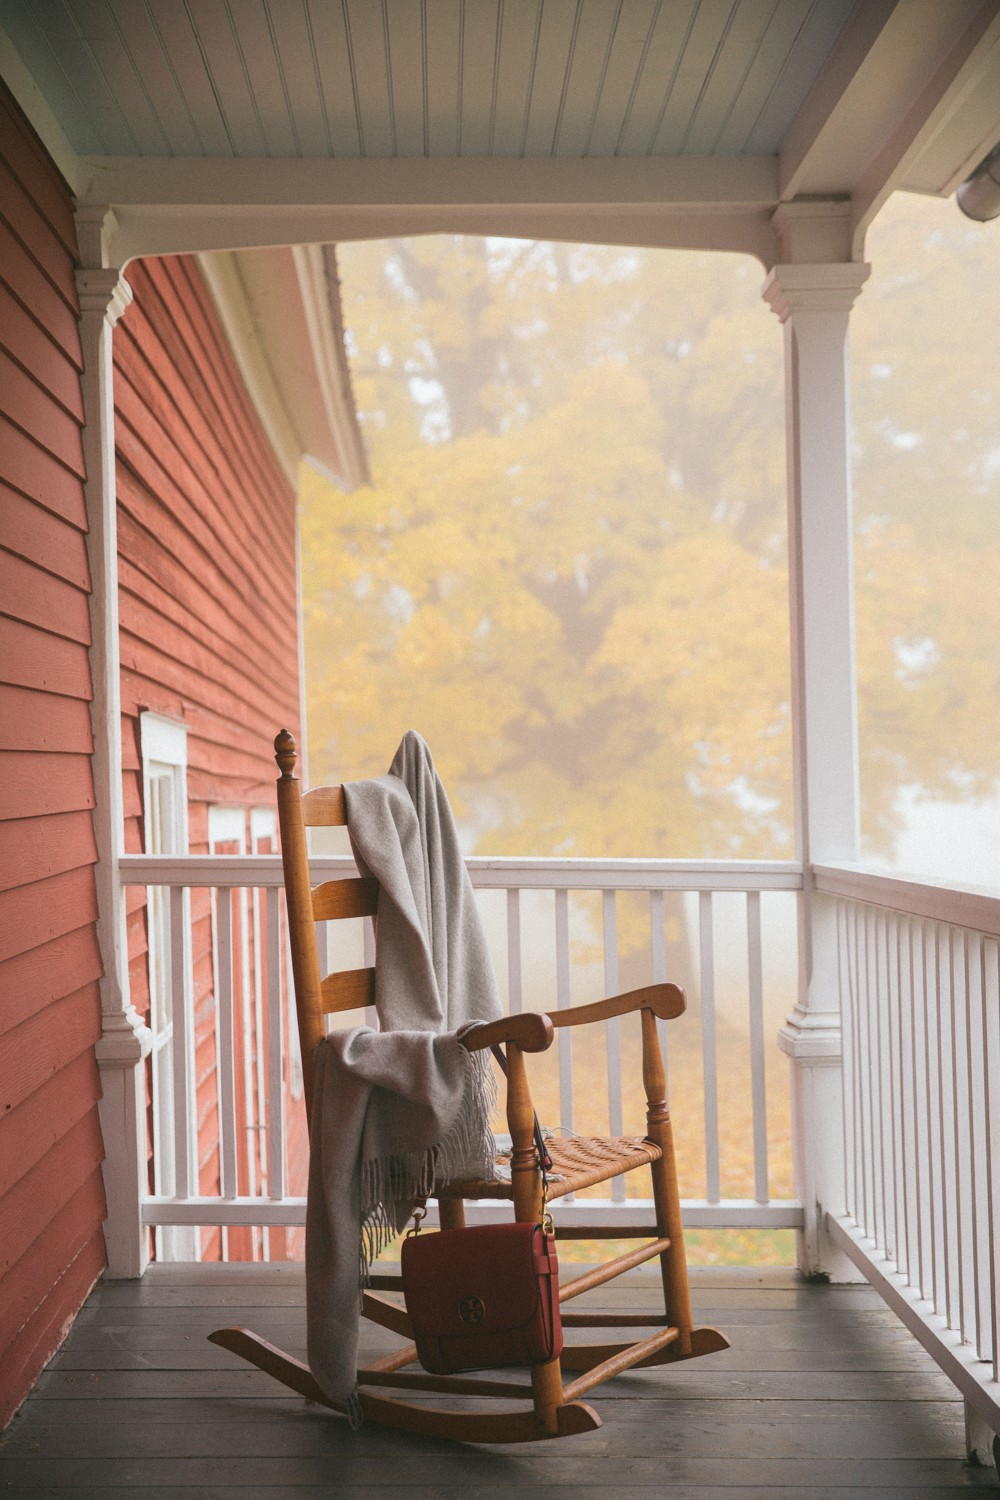 Misty morning on the front porch